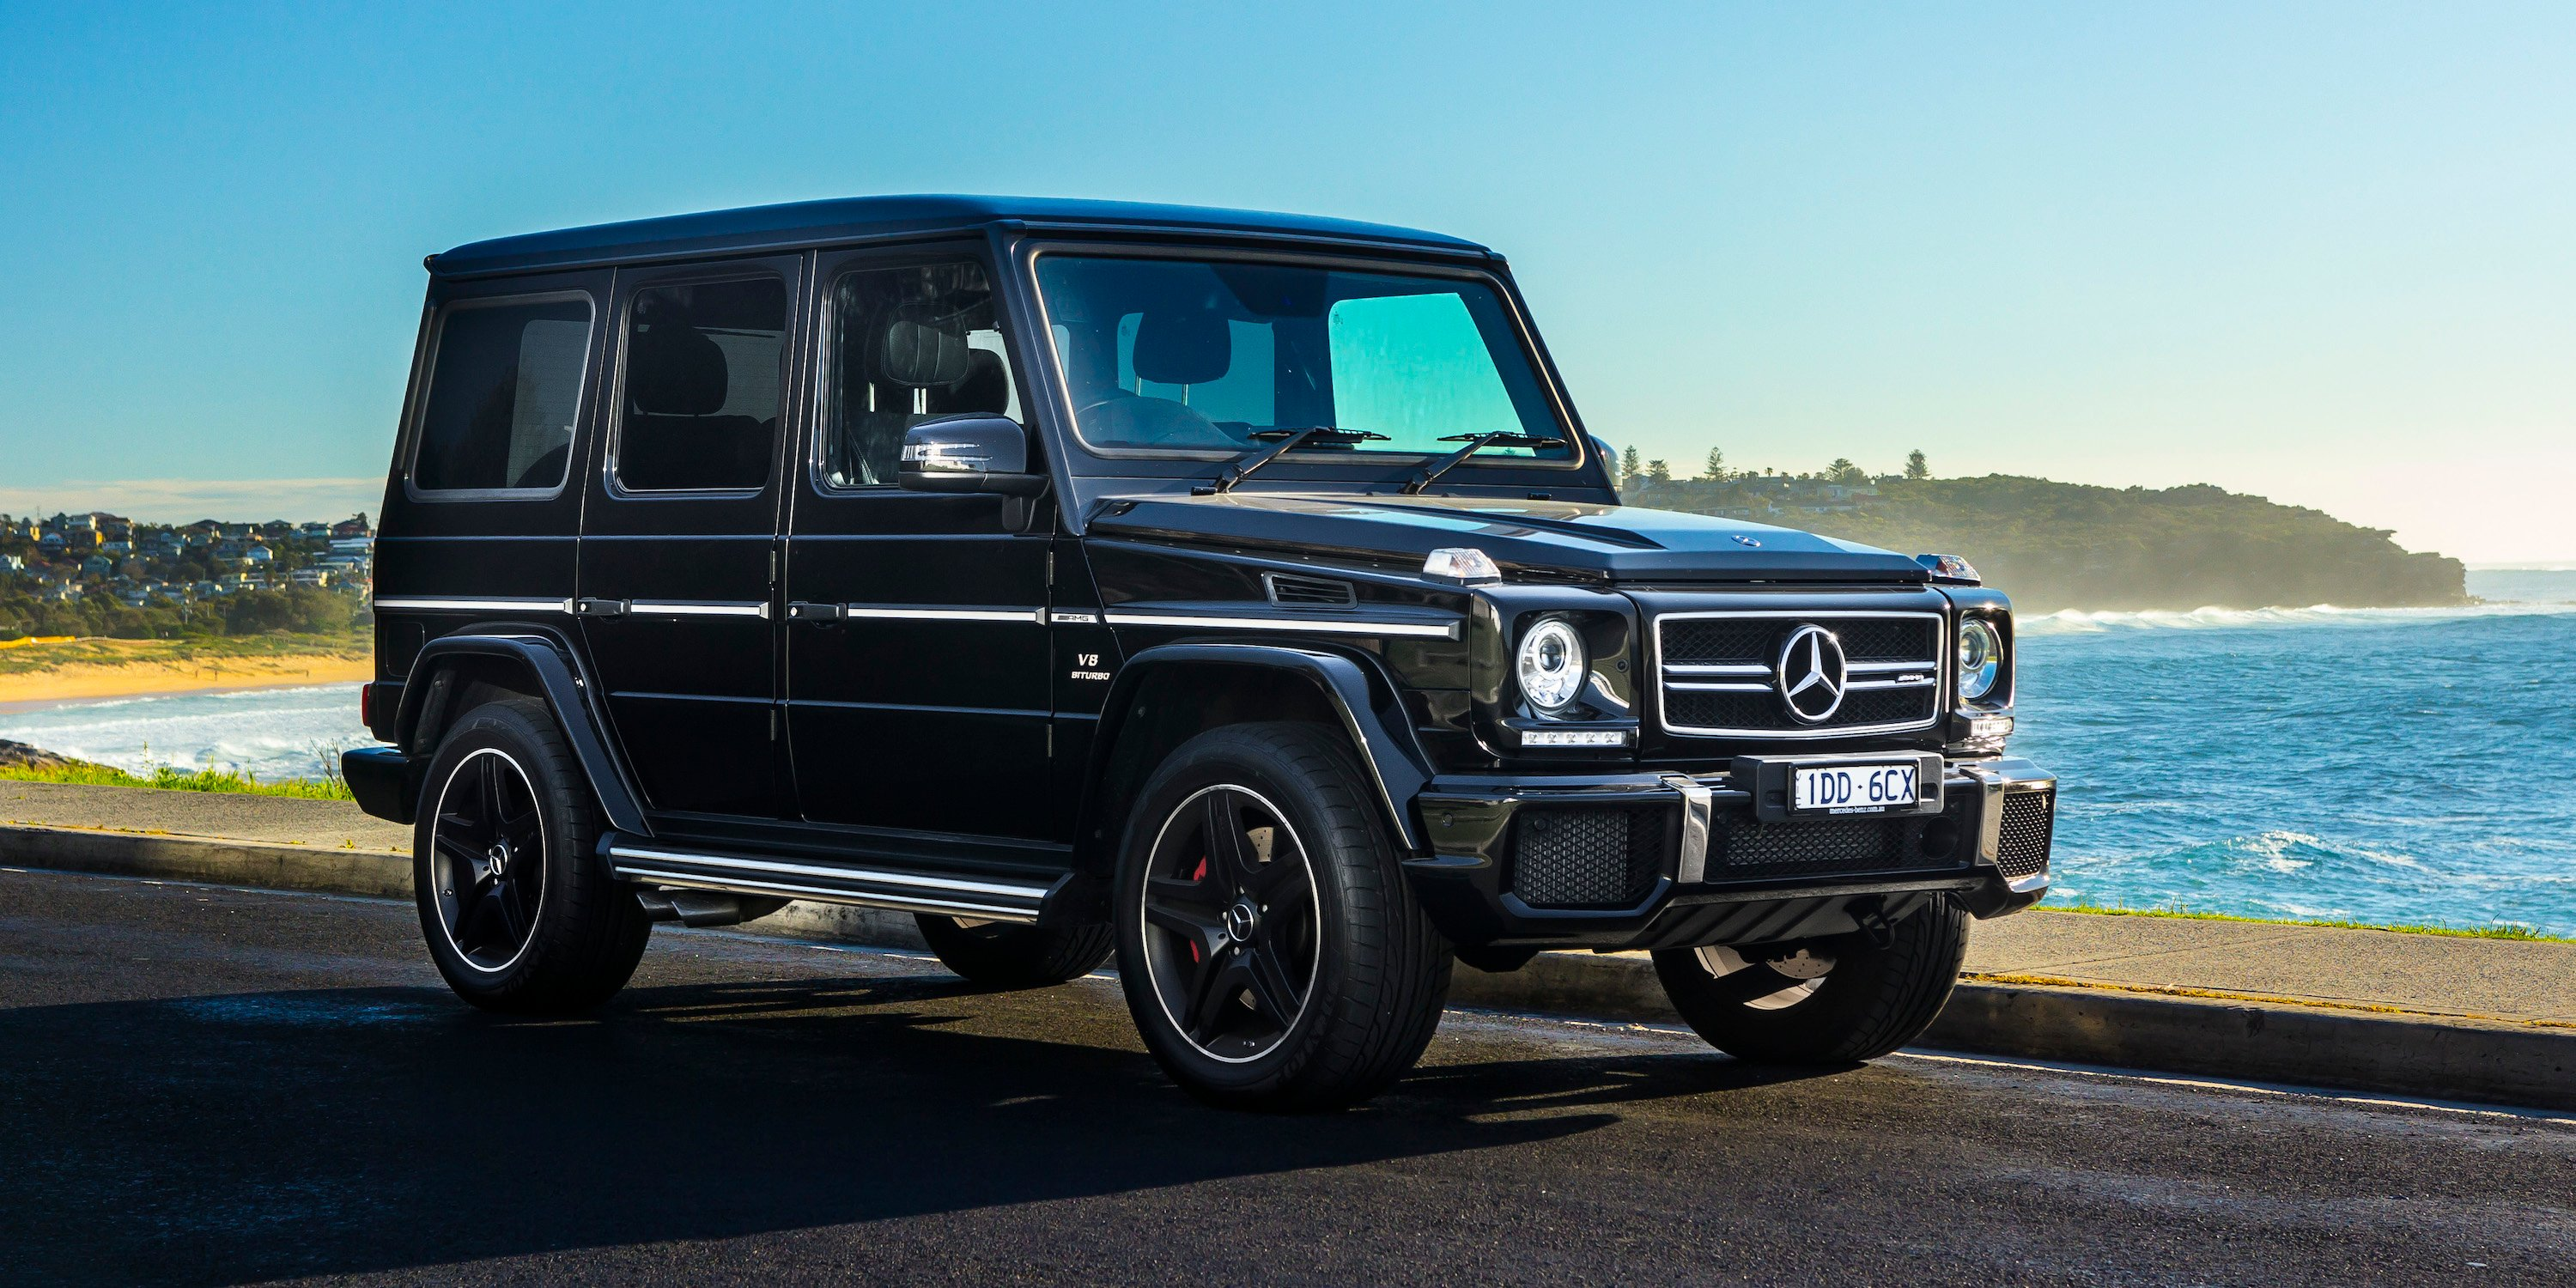 2015 mercedes benz g63 amg review the rockstar of suvs for Mercedes benz g class suv price